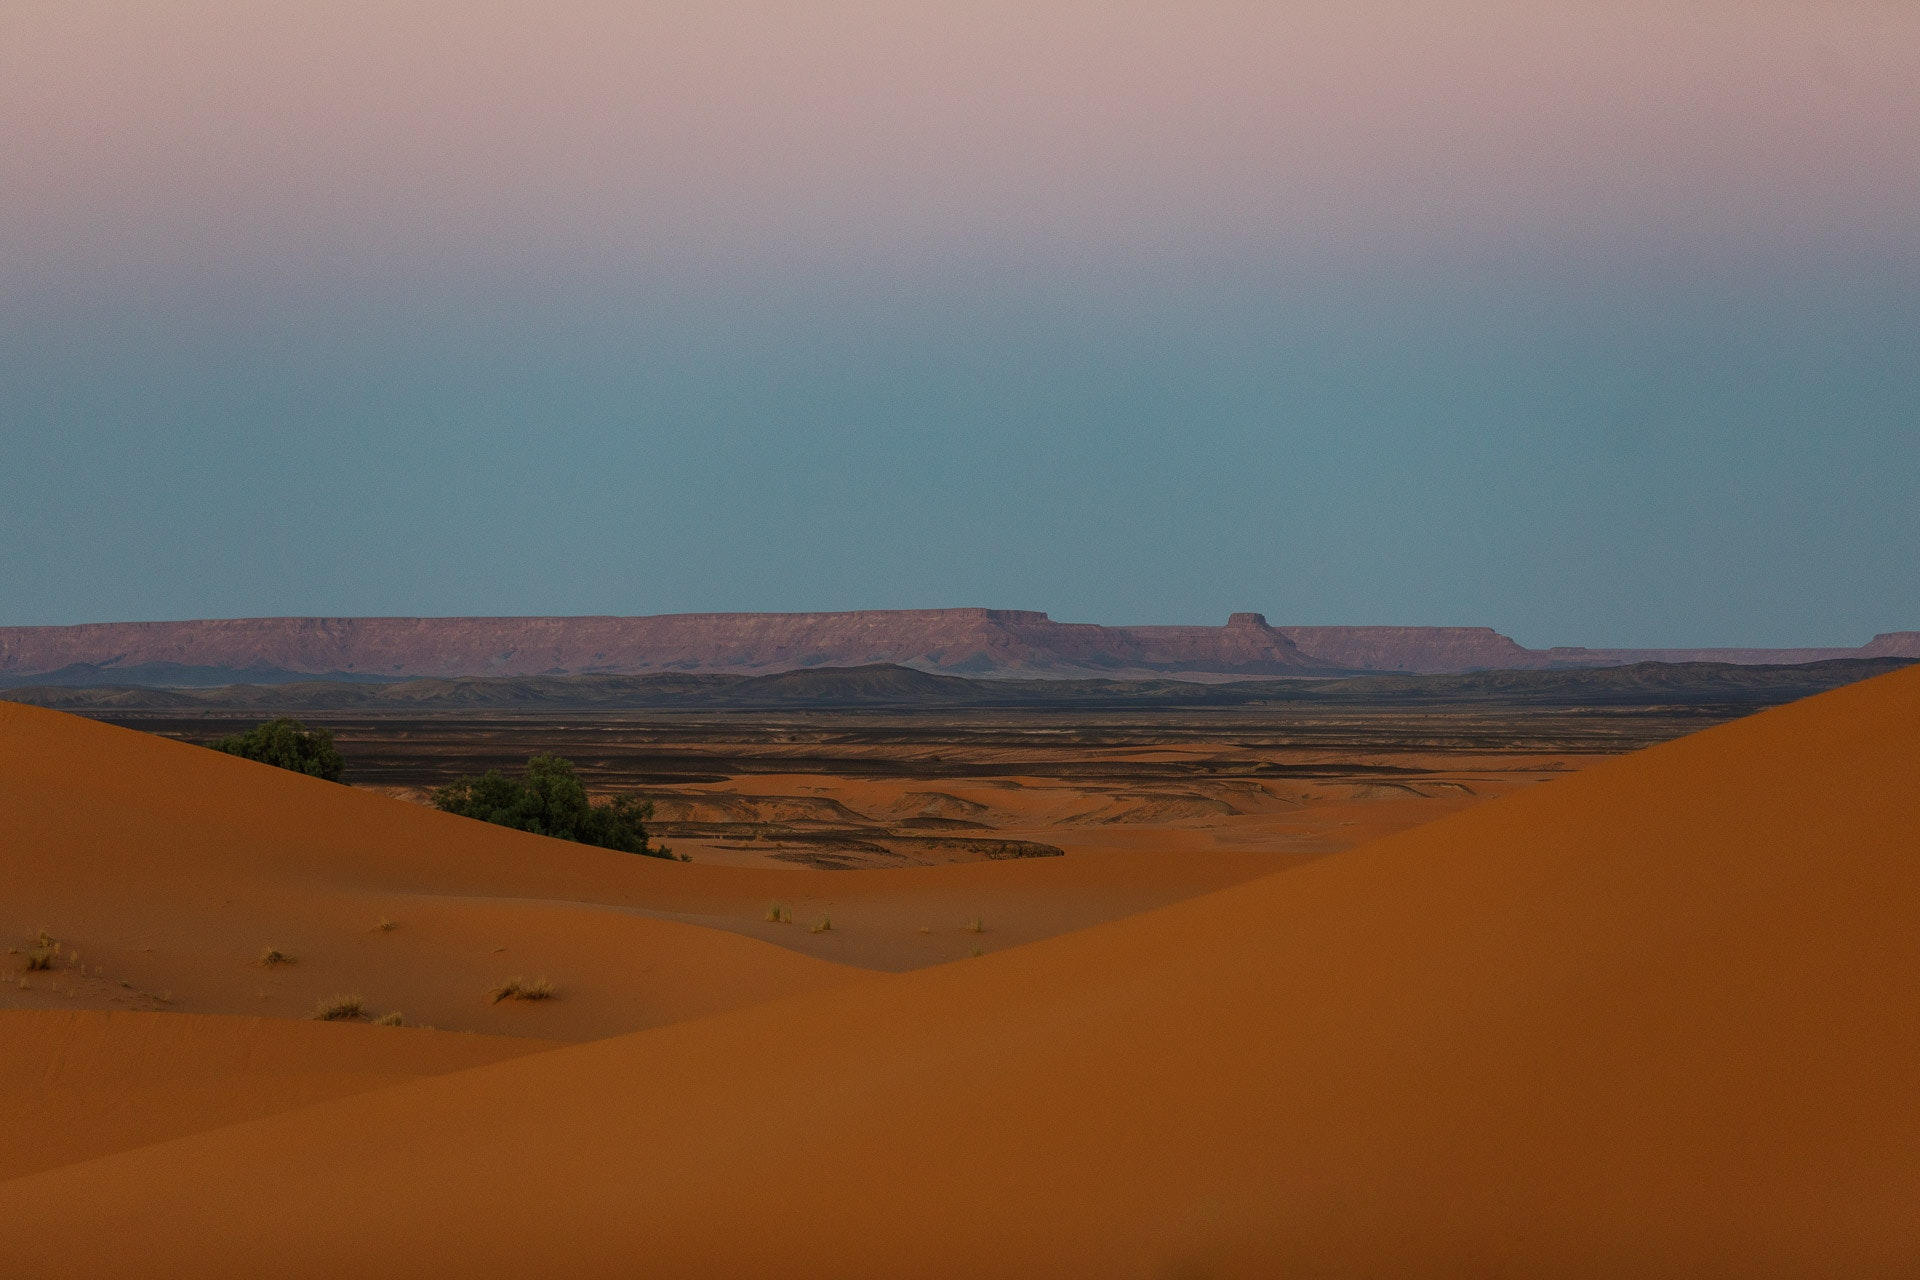 The Merzouga landscape beyond the sand dunes.